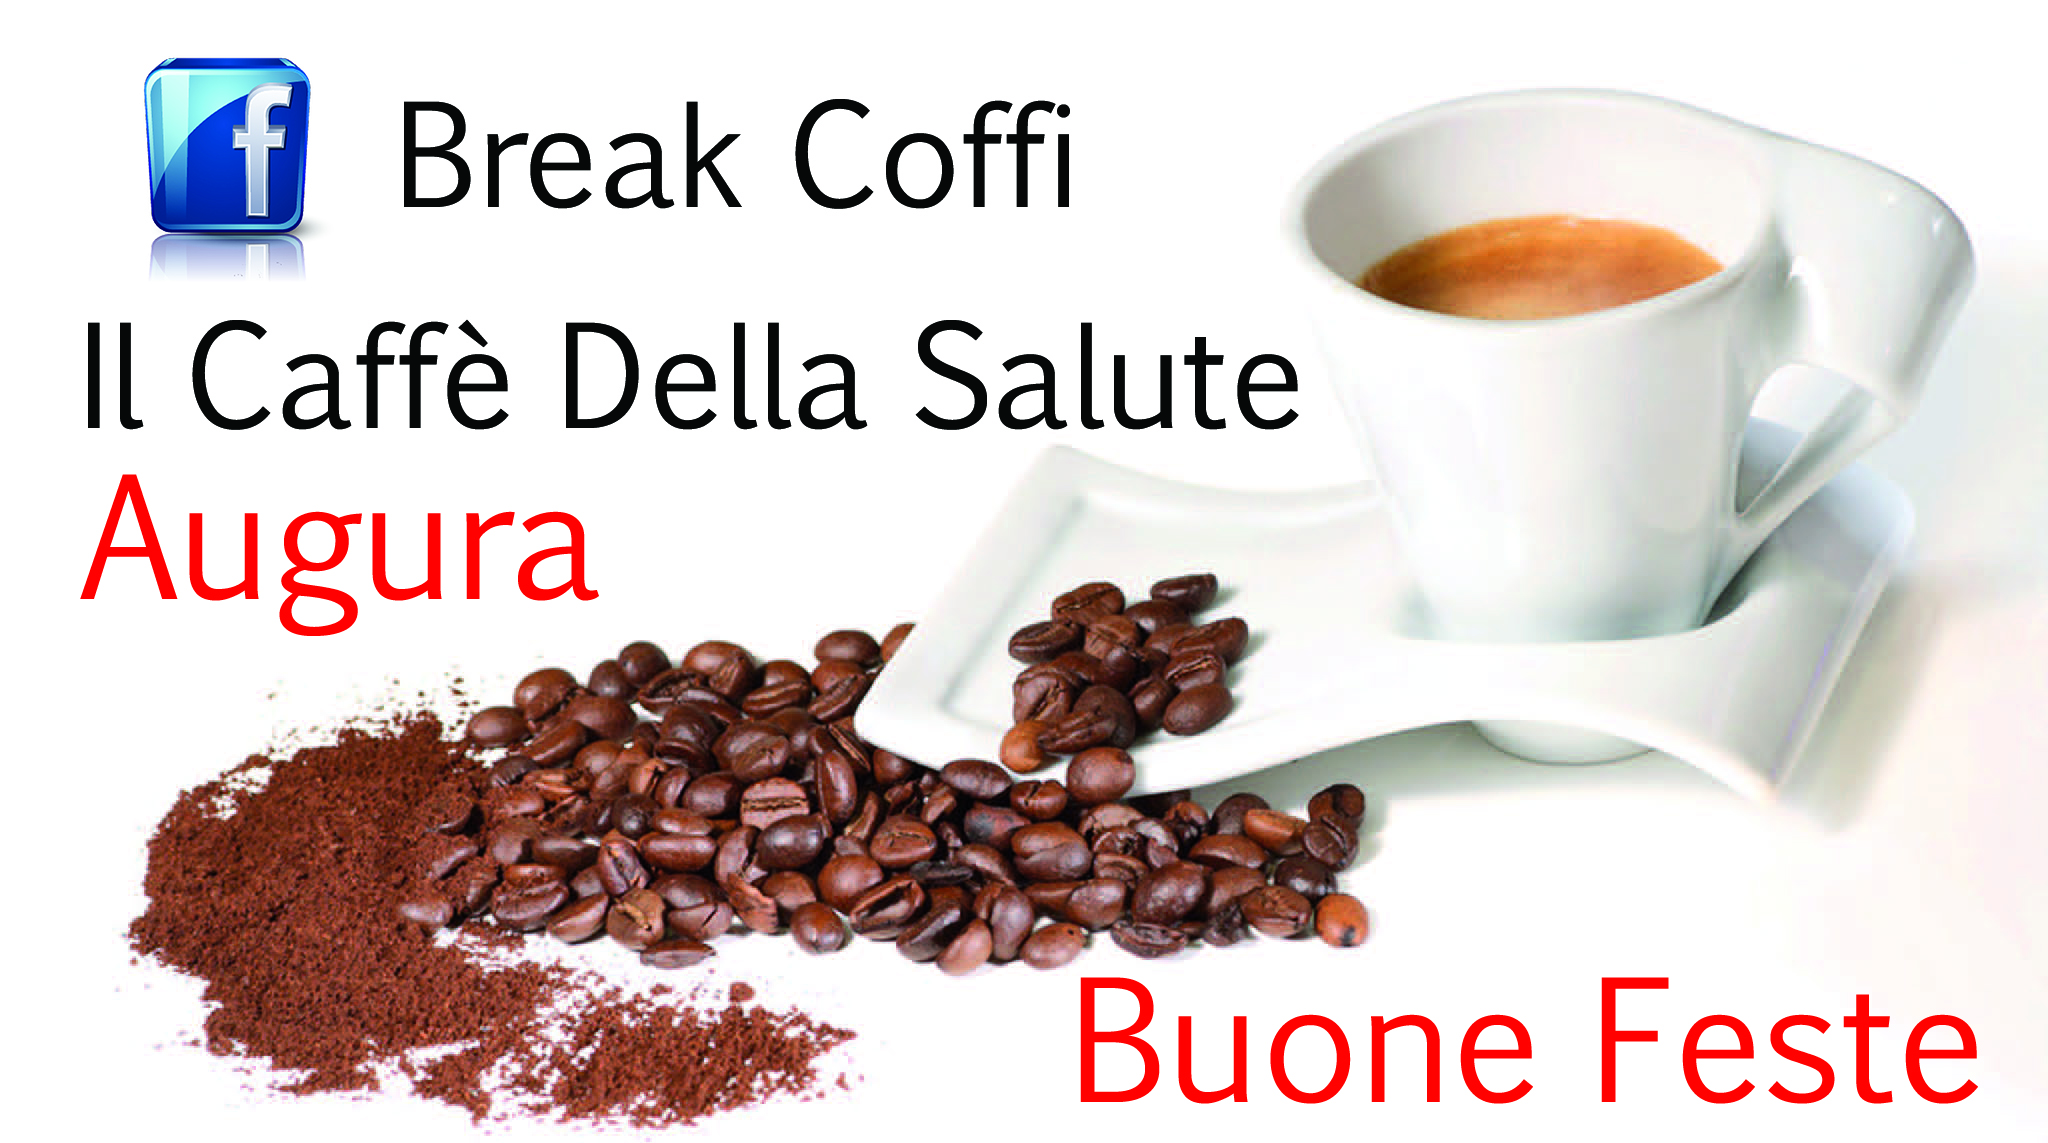 https://www.breakmagazinenews.it/wp-content/uploads/2018/12/2017-09-20-BREAK-COFFI-BUONE-FESTE.jpg